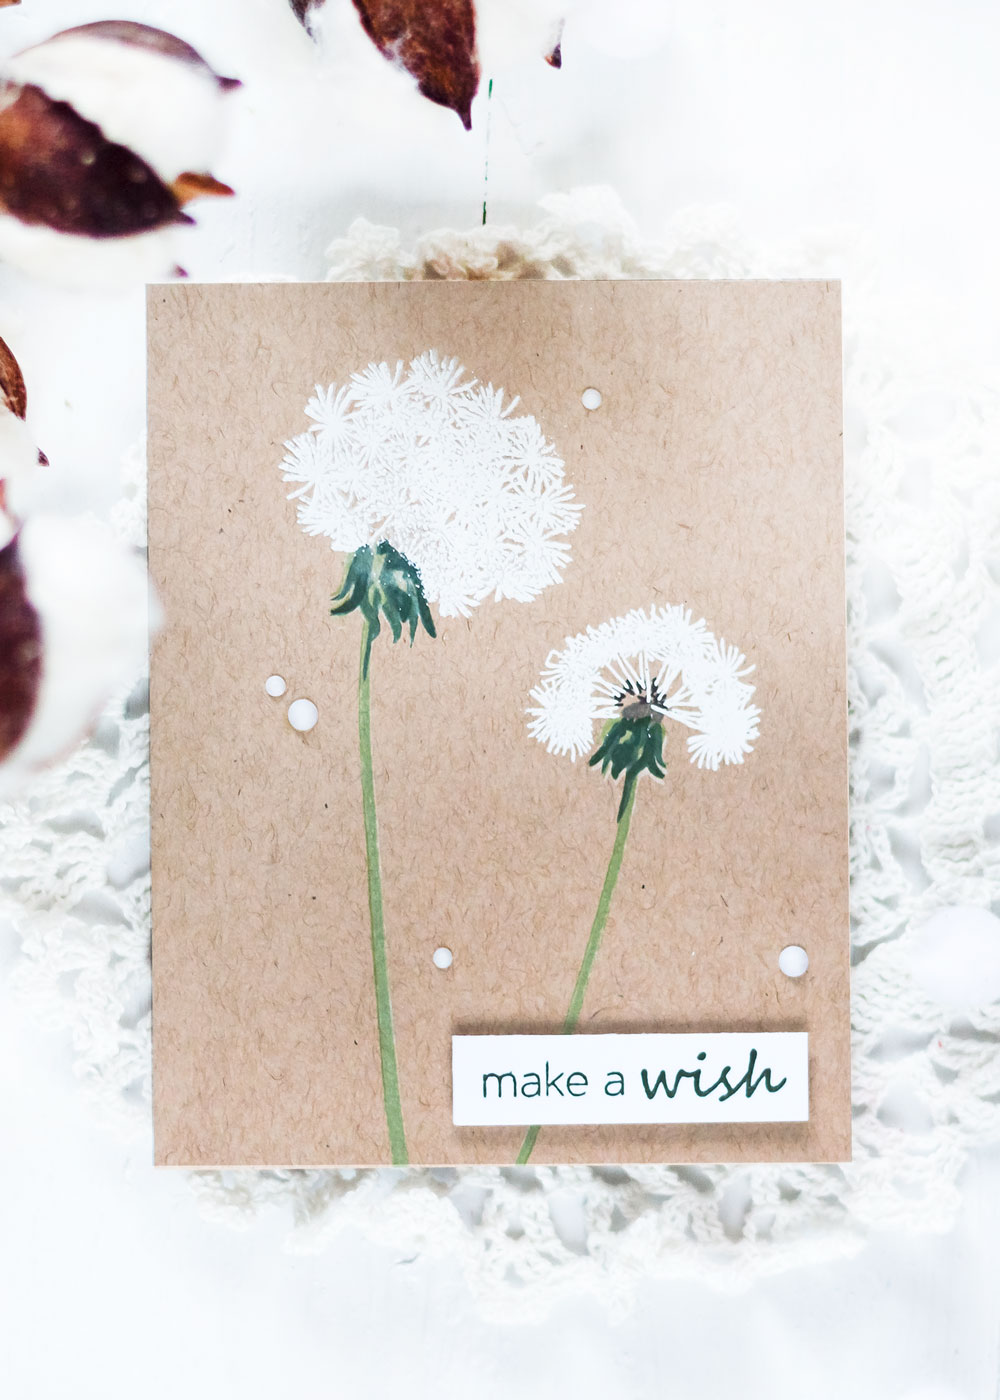 Altenew Dandelion Wishes. Card by Svitlana Shayevich